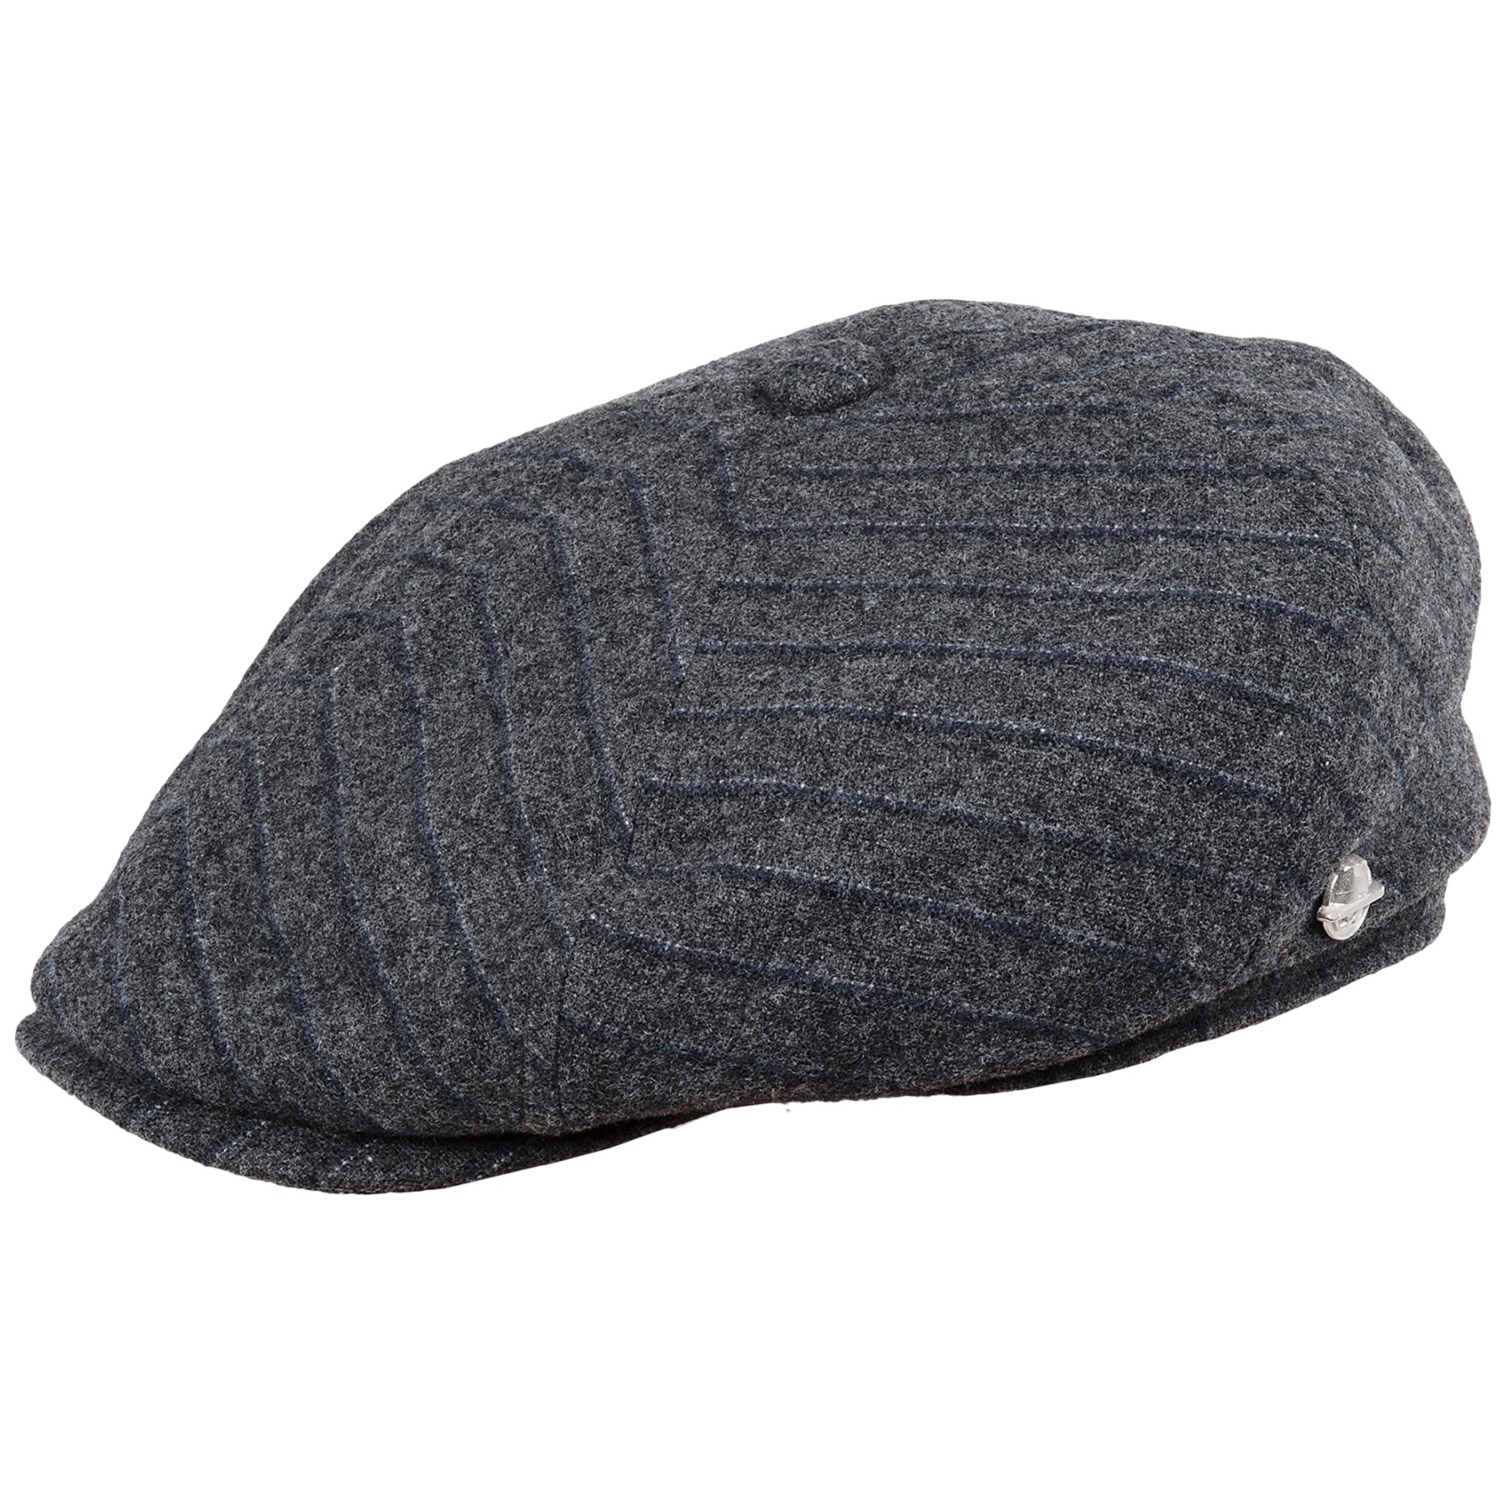 Shop online for Men's Newsboy & Driving Caps at disborunmaba.ga Find caps in fine wools, felts & linen. Free Shipping. Free Returns. All the time.